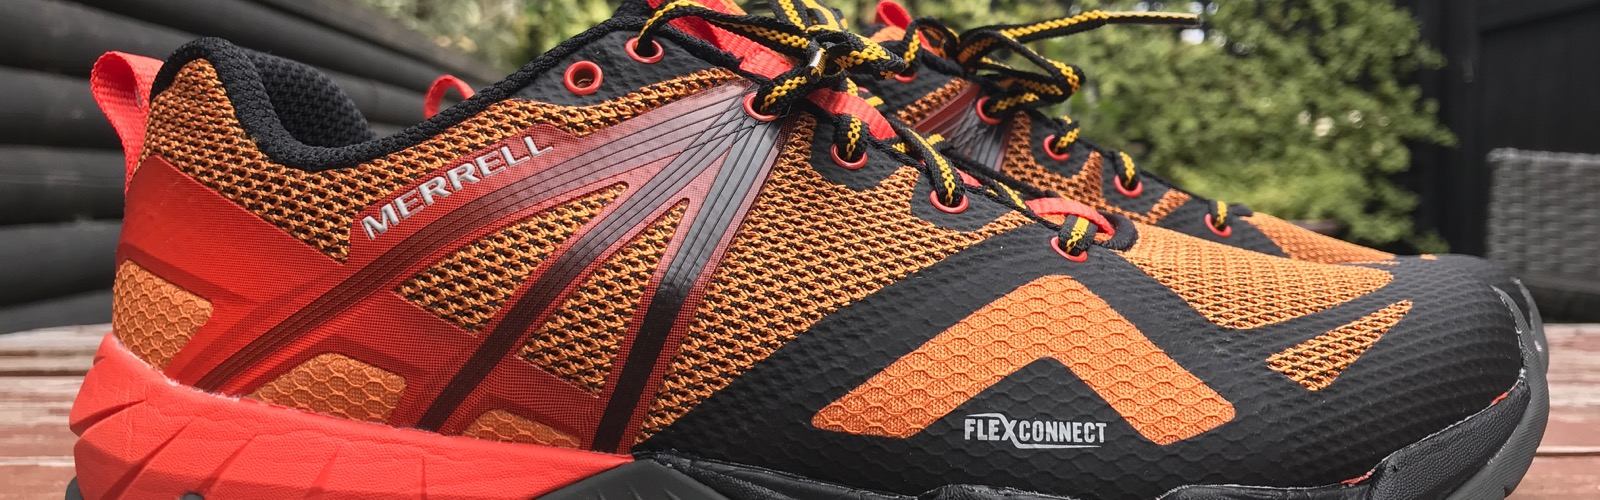 Gear Review : Merrell MQM Flex Trail Shoes